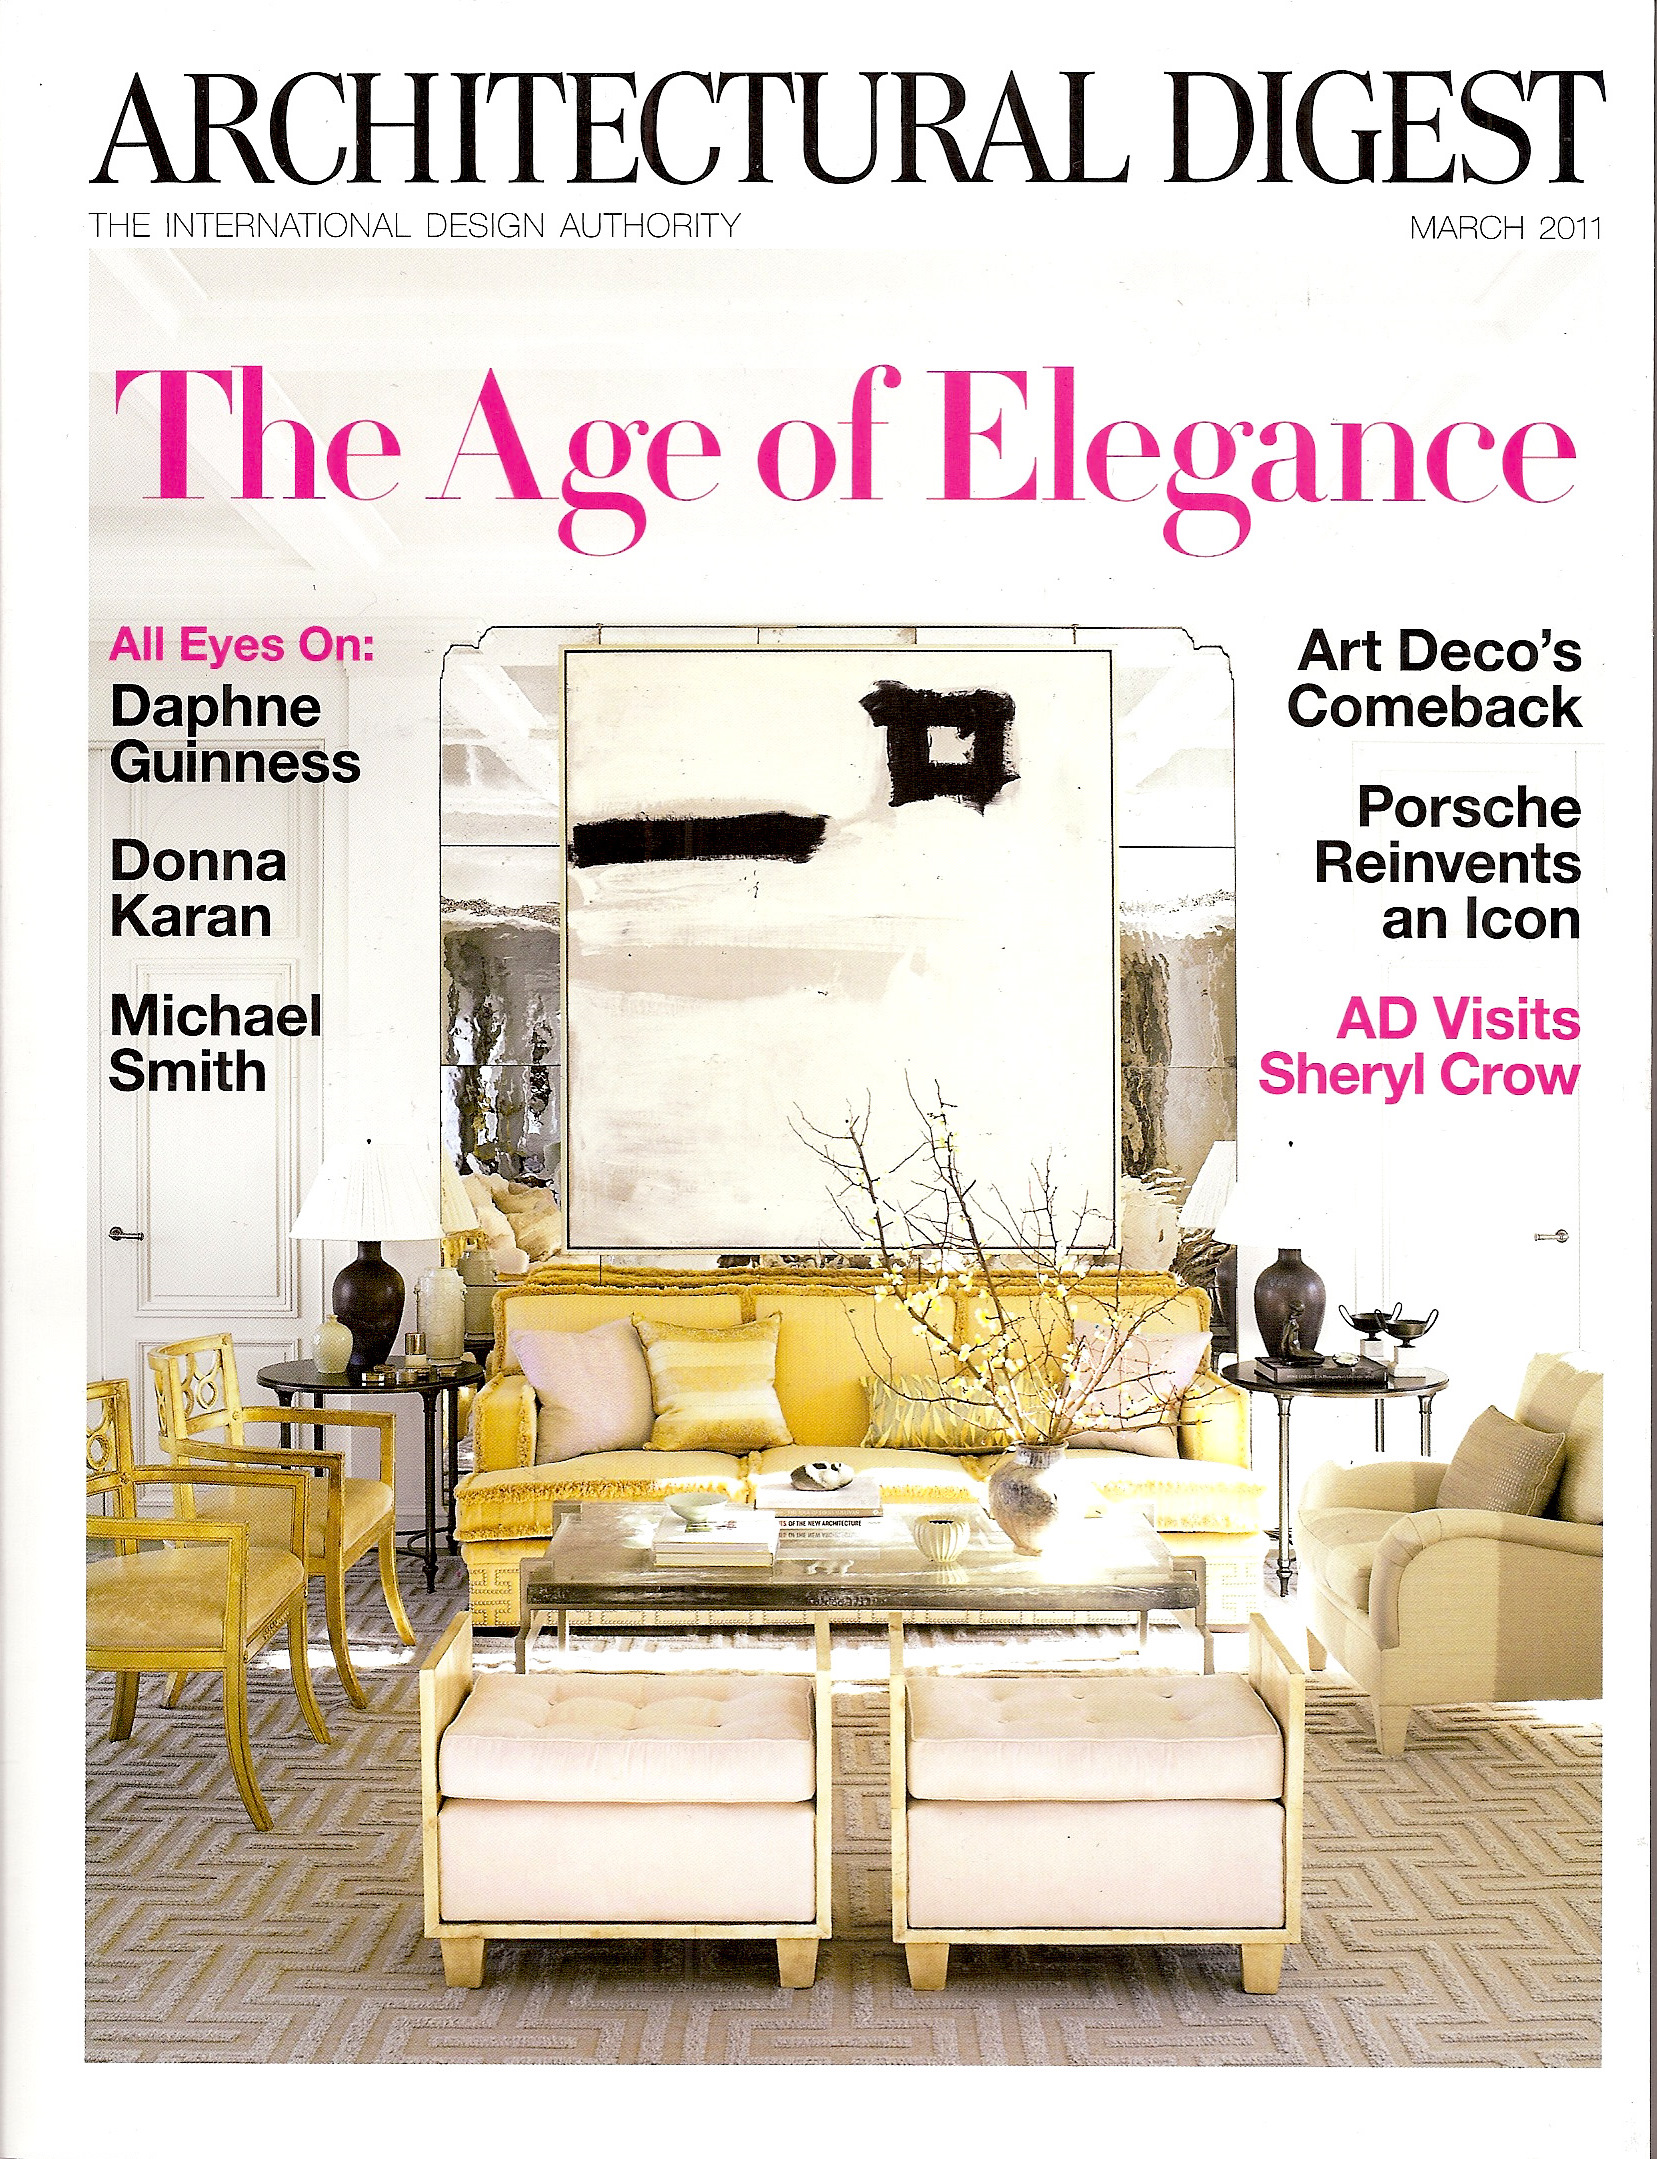 Architectural Digest, March 2011